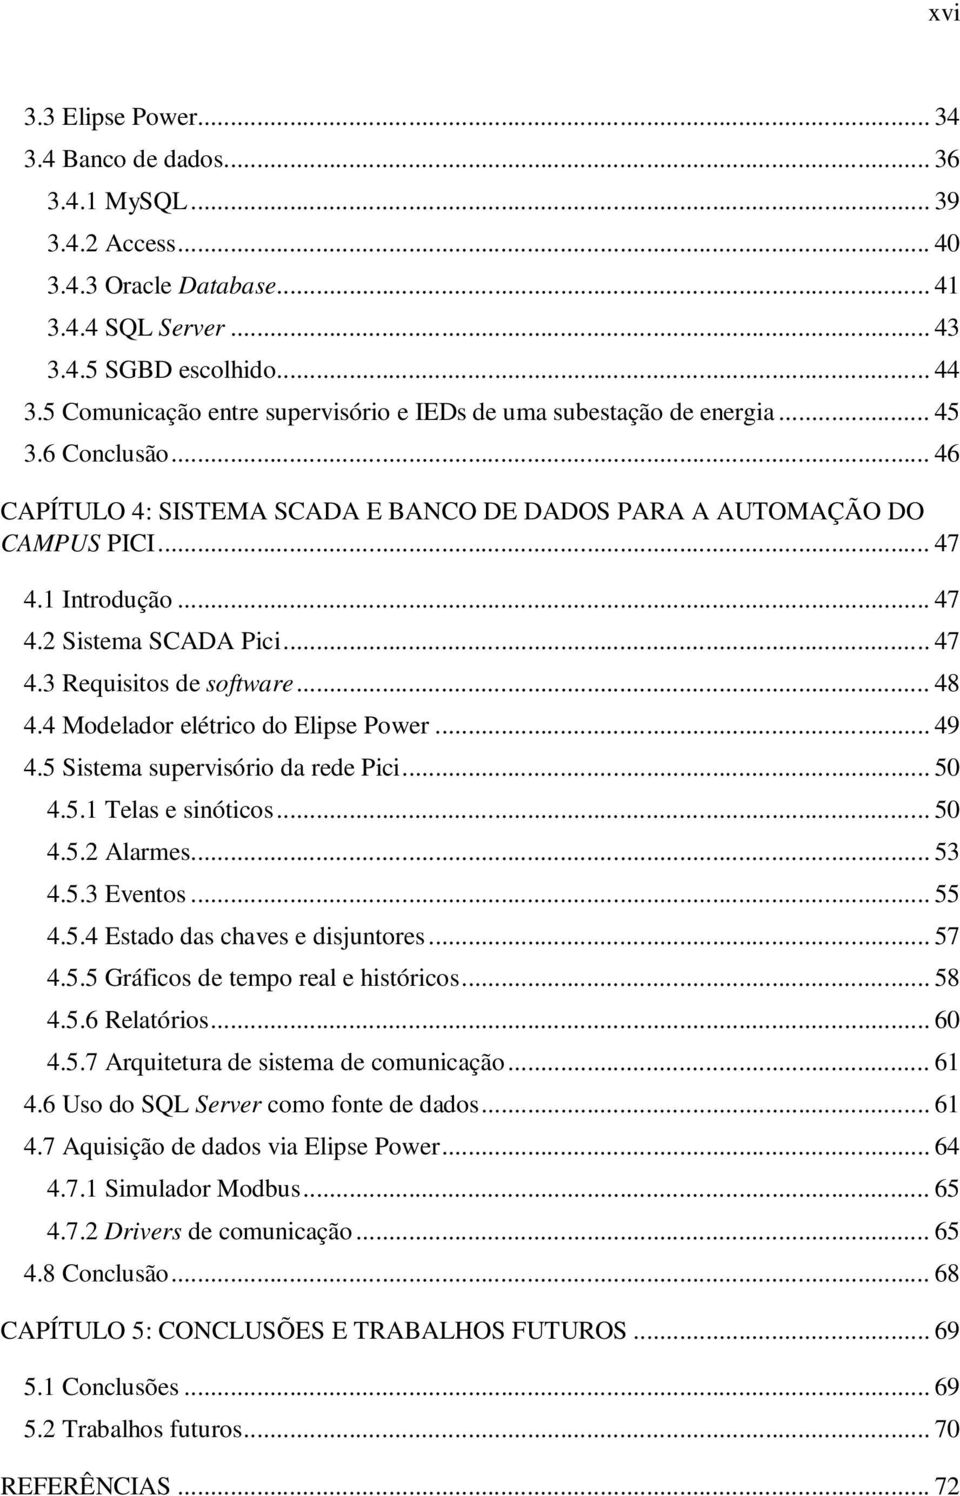 .. 47 4.3 Requisitos de software... 48 4.4 Modelador elétrico do Elipse Power... 49 4.5 Sistema supervisório da rede Pici... 50 4.5.1 Telas e sinóticos... 50 4.5.2 Alarmes... 53 4.5.3 Eventos... 55 4.